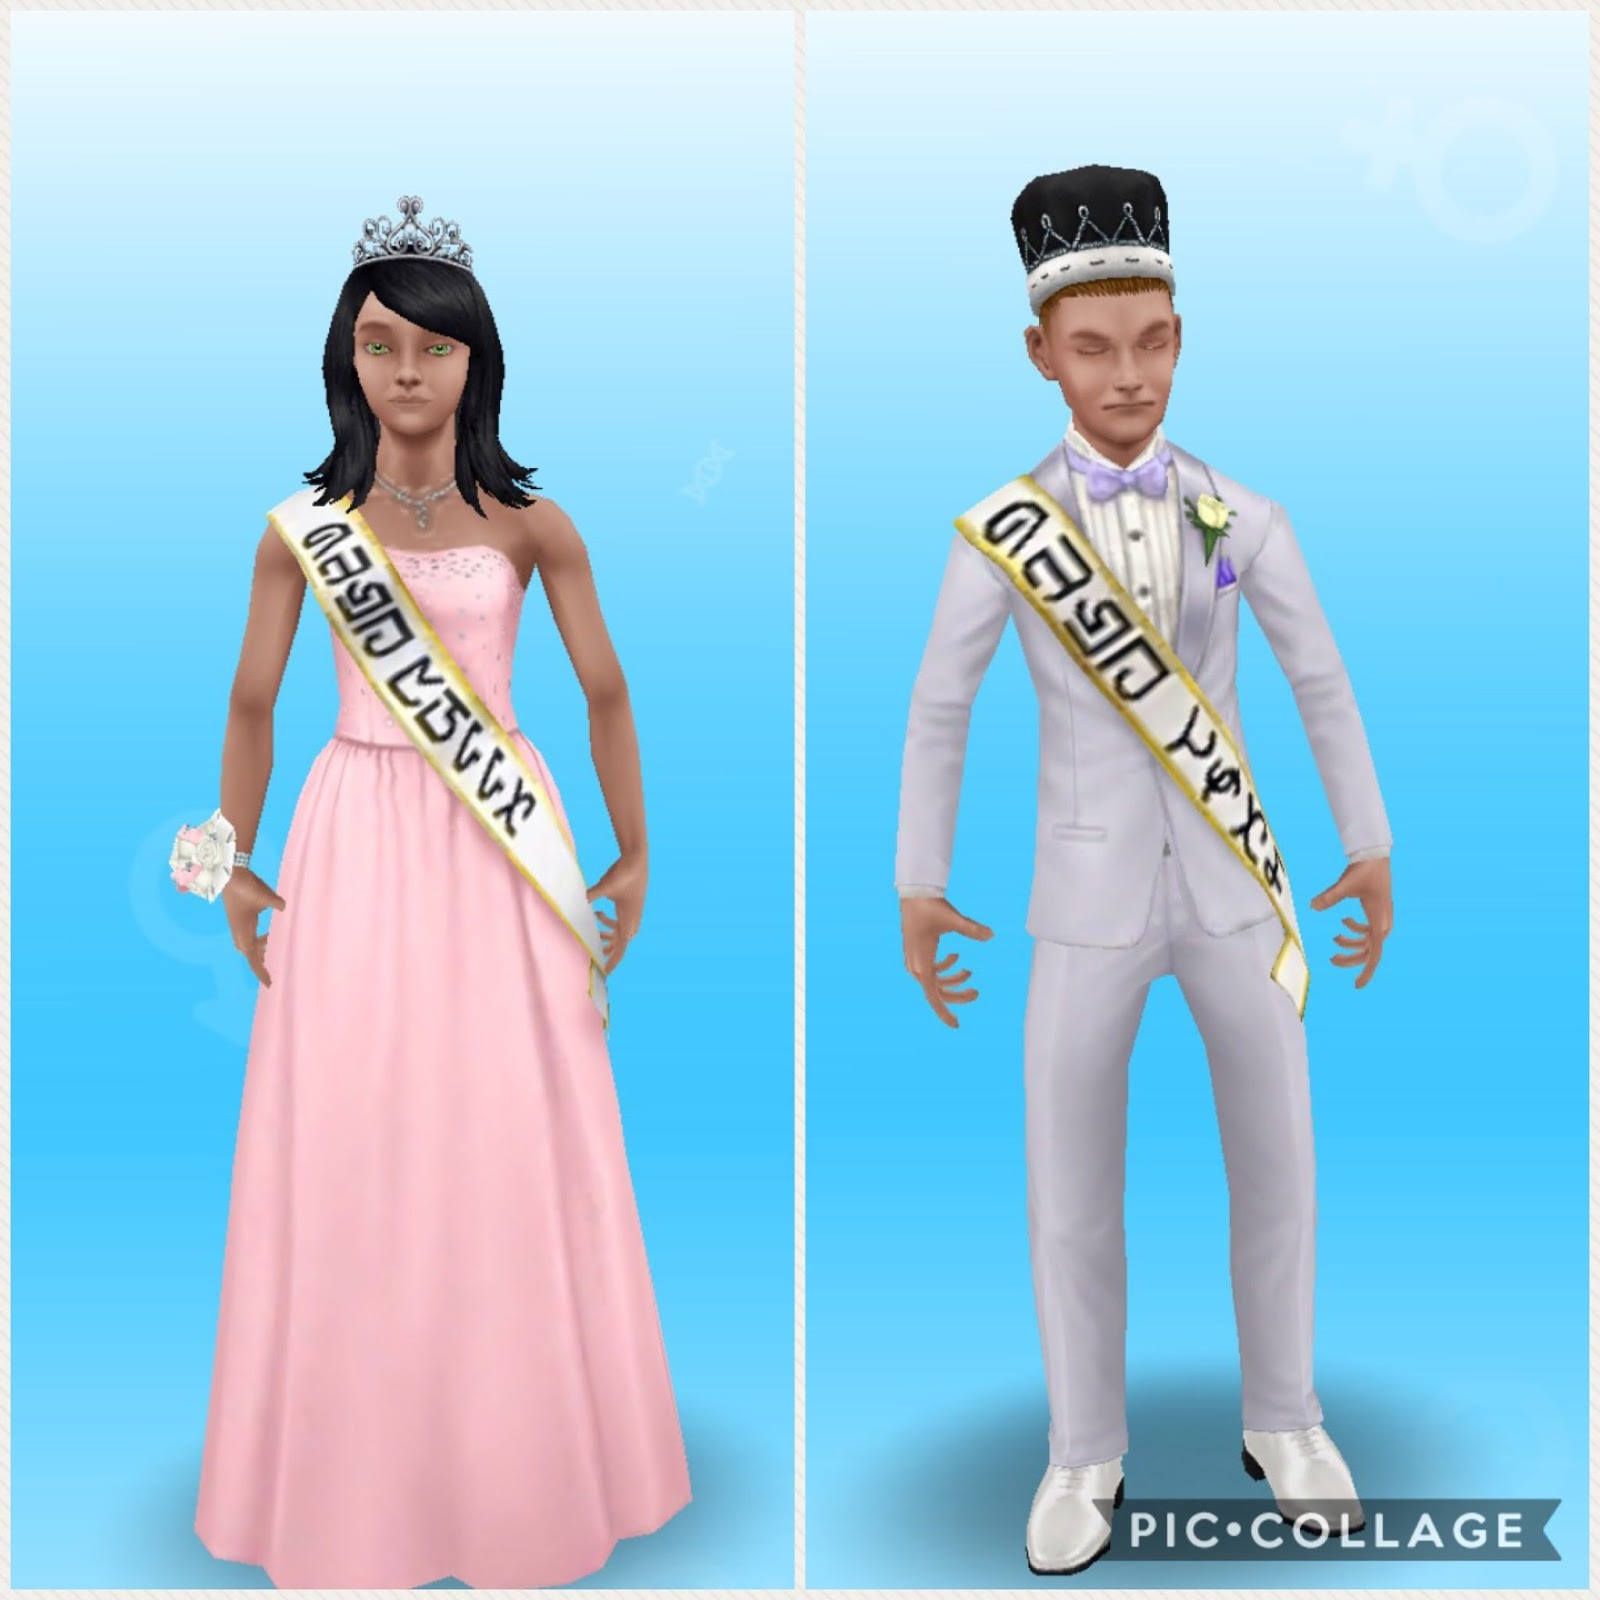 Followed by 8 different colours of prom outfits for your male and female Sims  sc 1 st  Sims Freeplay & SimsFreeplay : Sims Freeplay | Prepped for Prom Event